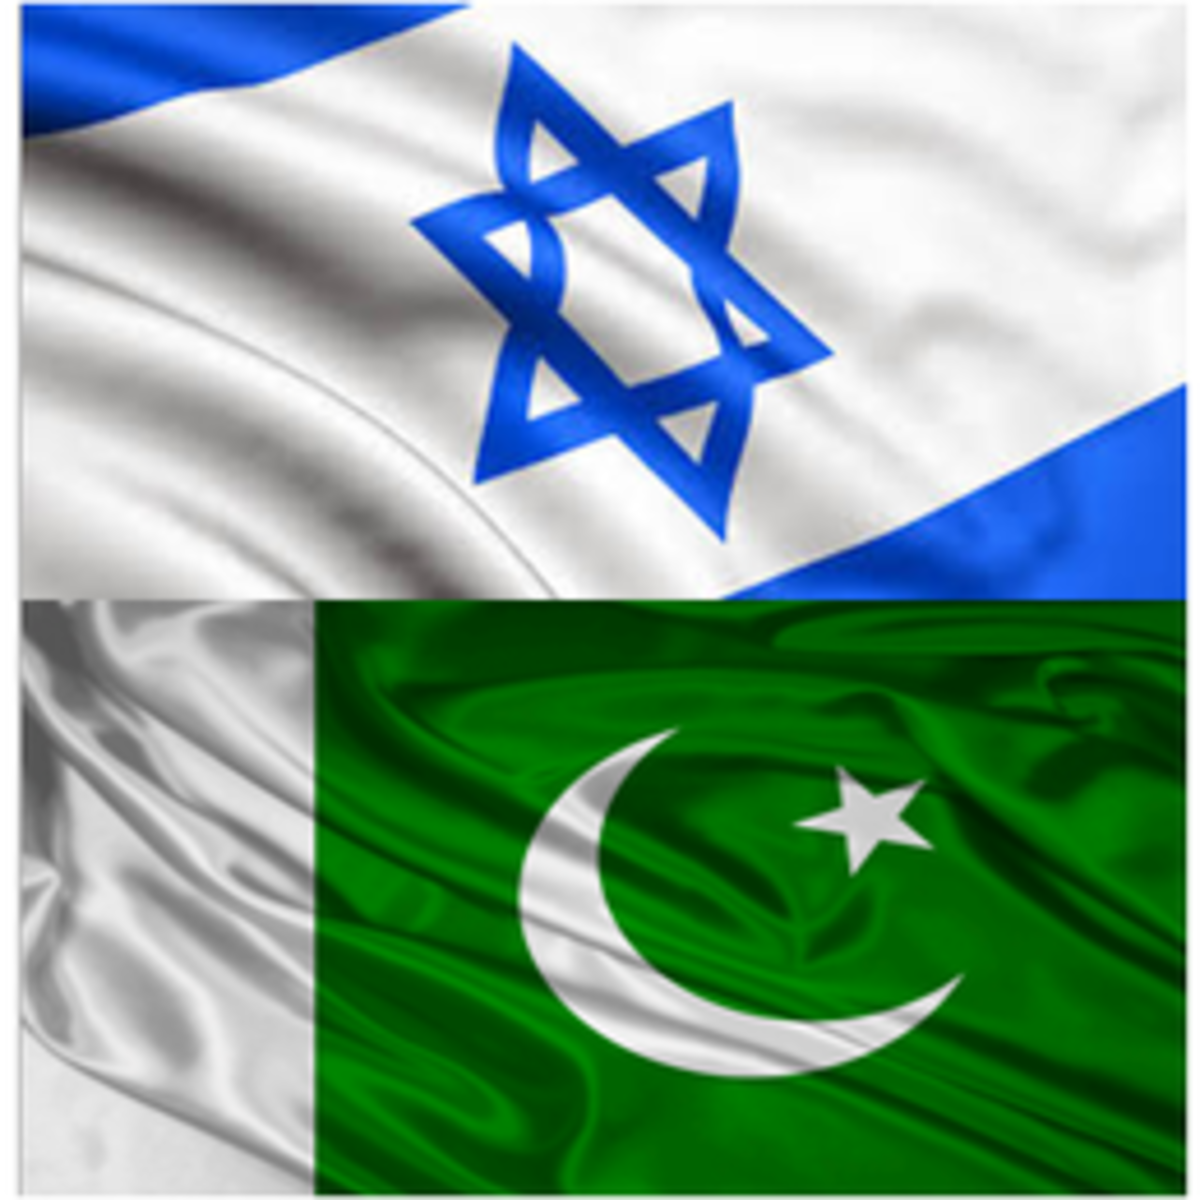 Israel and Pakistan Flags